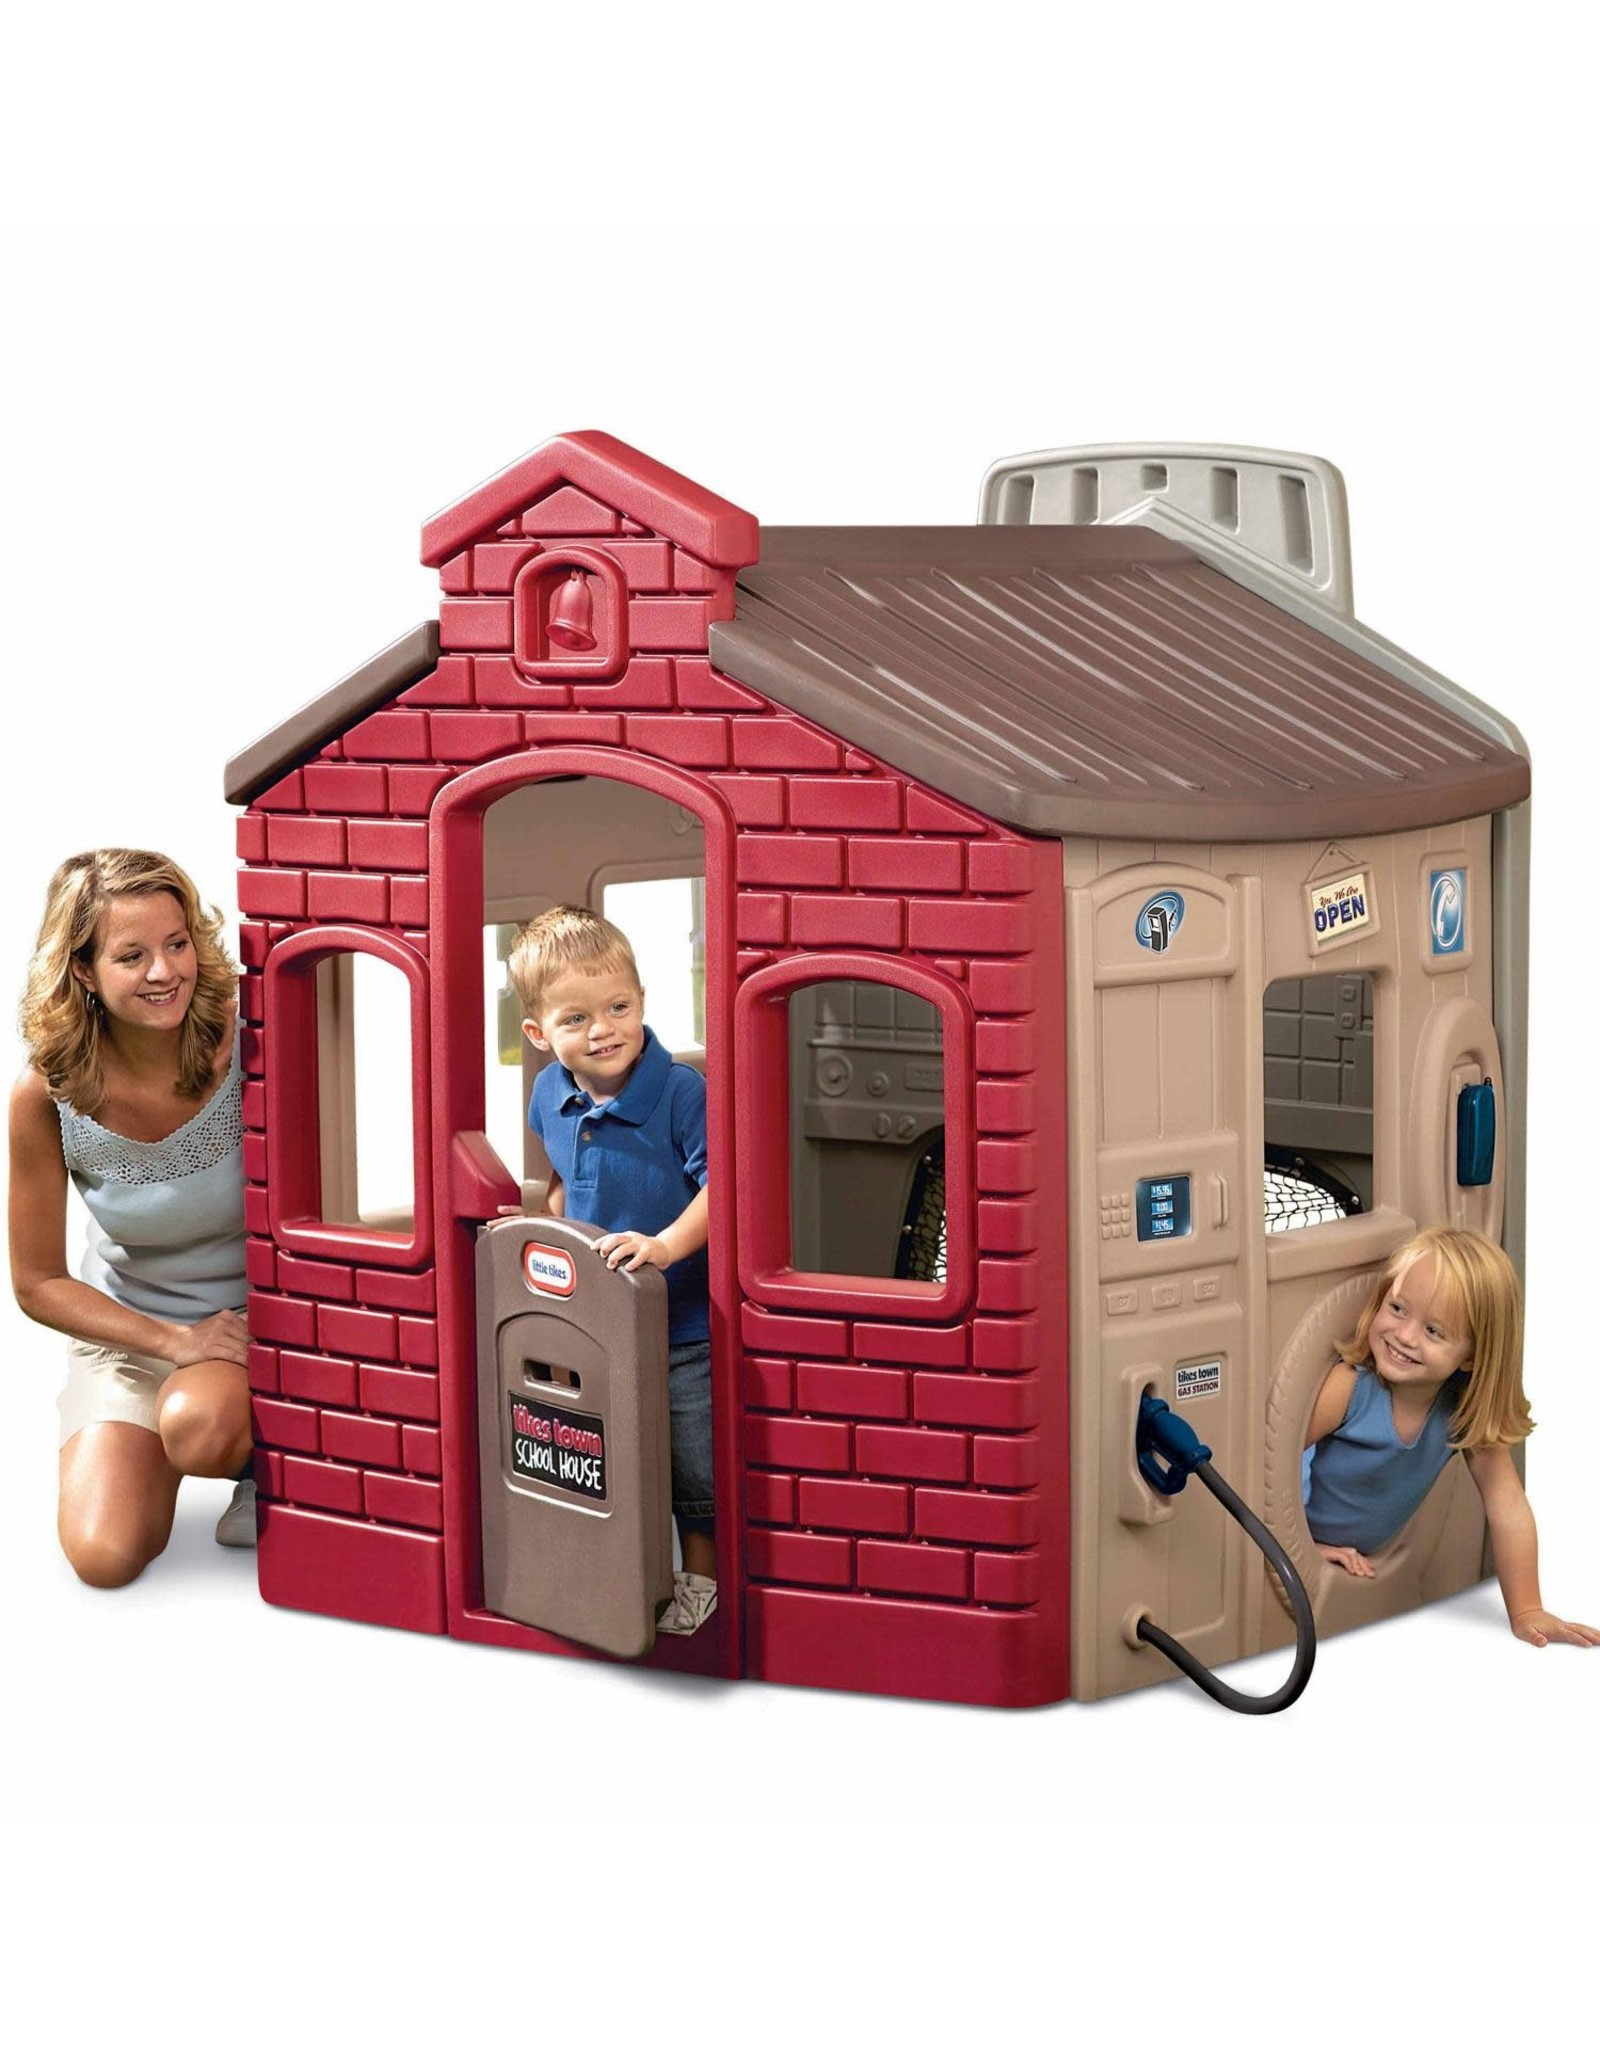 Little Tikes Little Tikes 4-in-1 Deluxe Playhouse